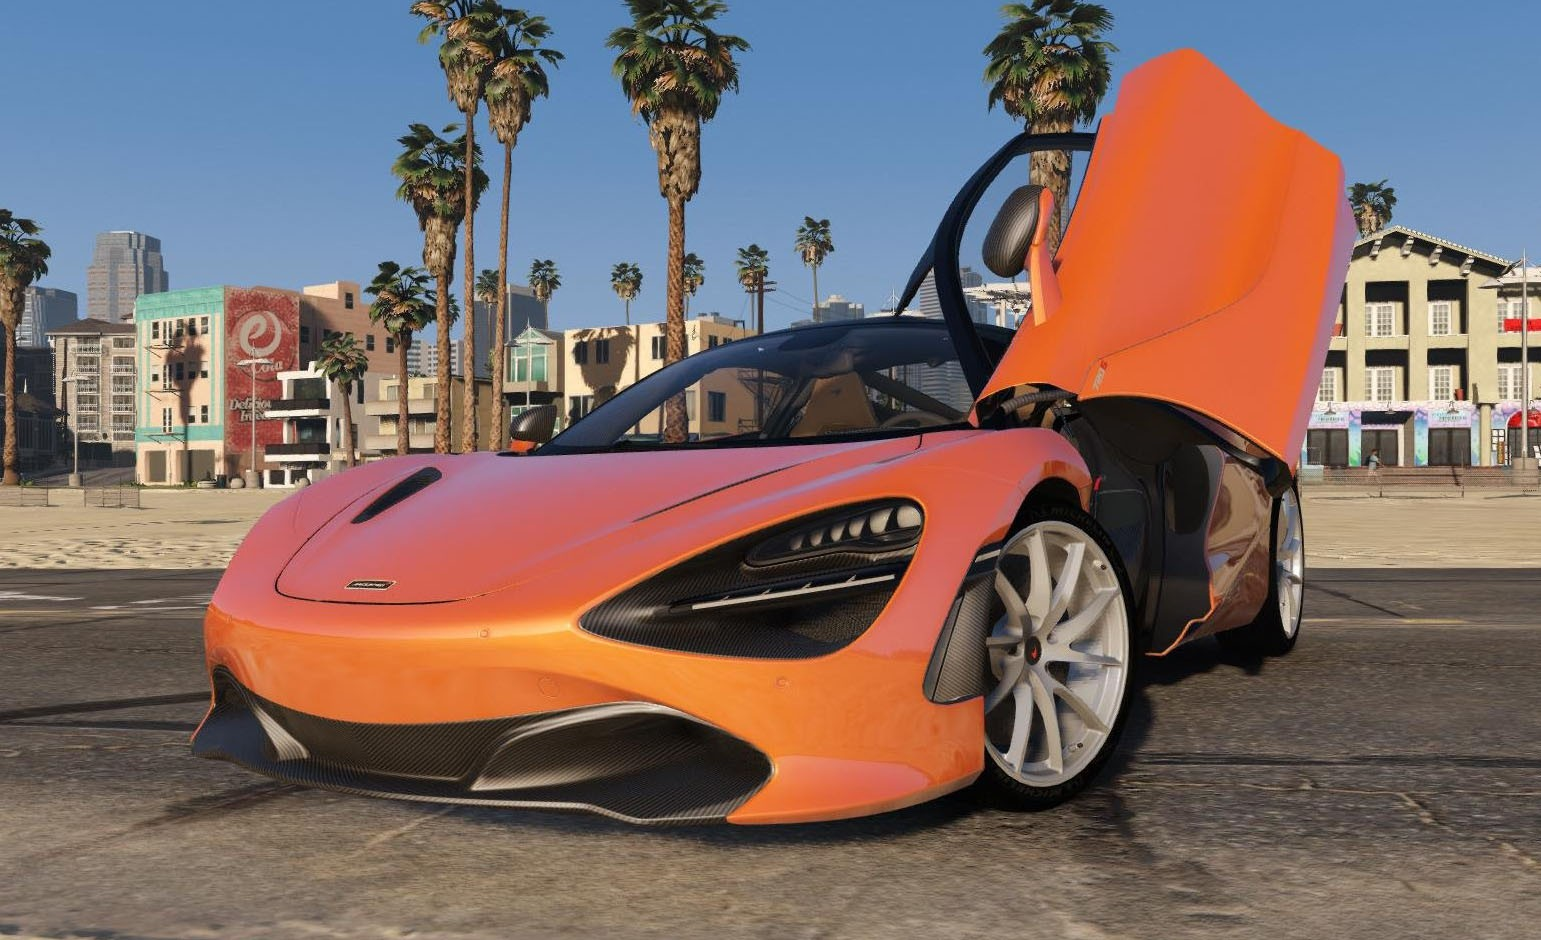 mclaren 720s 2018 v hicules t l chargements gta 5. Black Bedroom Furniture Sets. Home Design Ideas